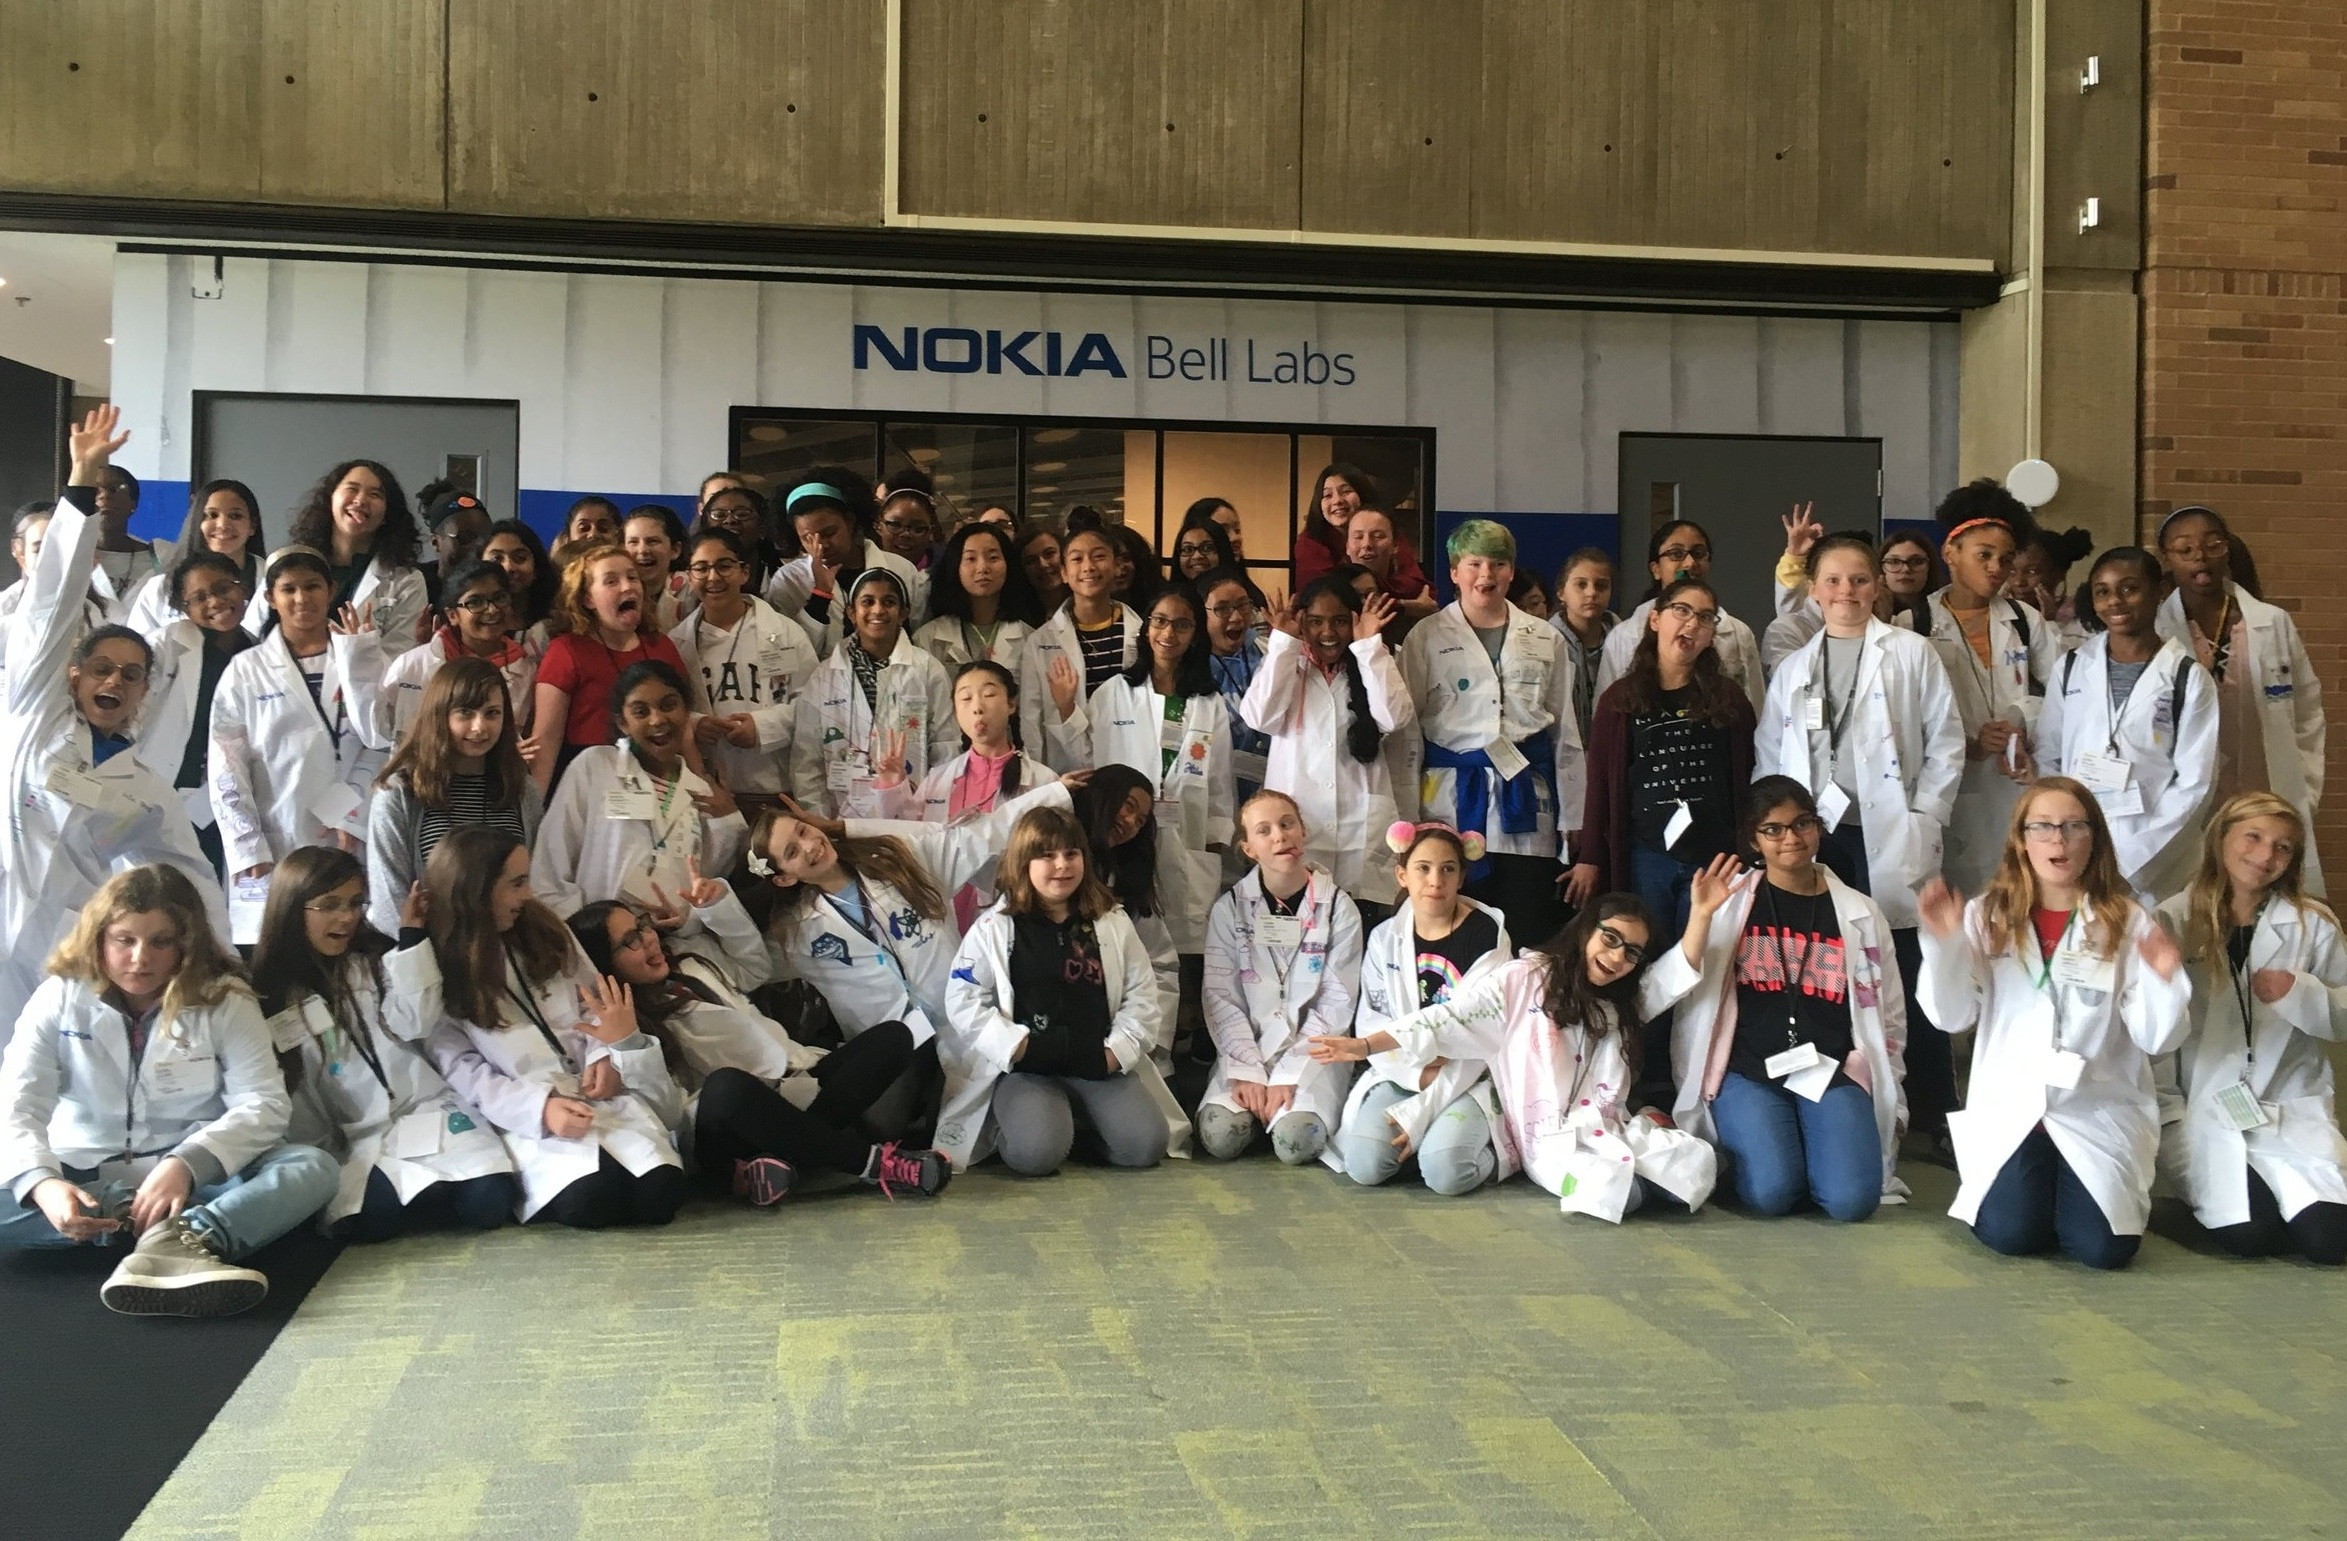 g4g Day @New Jersey - Nov. 2018    In November, we were thrilled to be back for a 2nd g4g Day in New Jersey, to inspire 100 girls for a day of STEM fun at the groundbreaking HQ of Nokia Bell Labs!